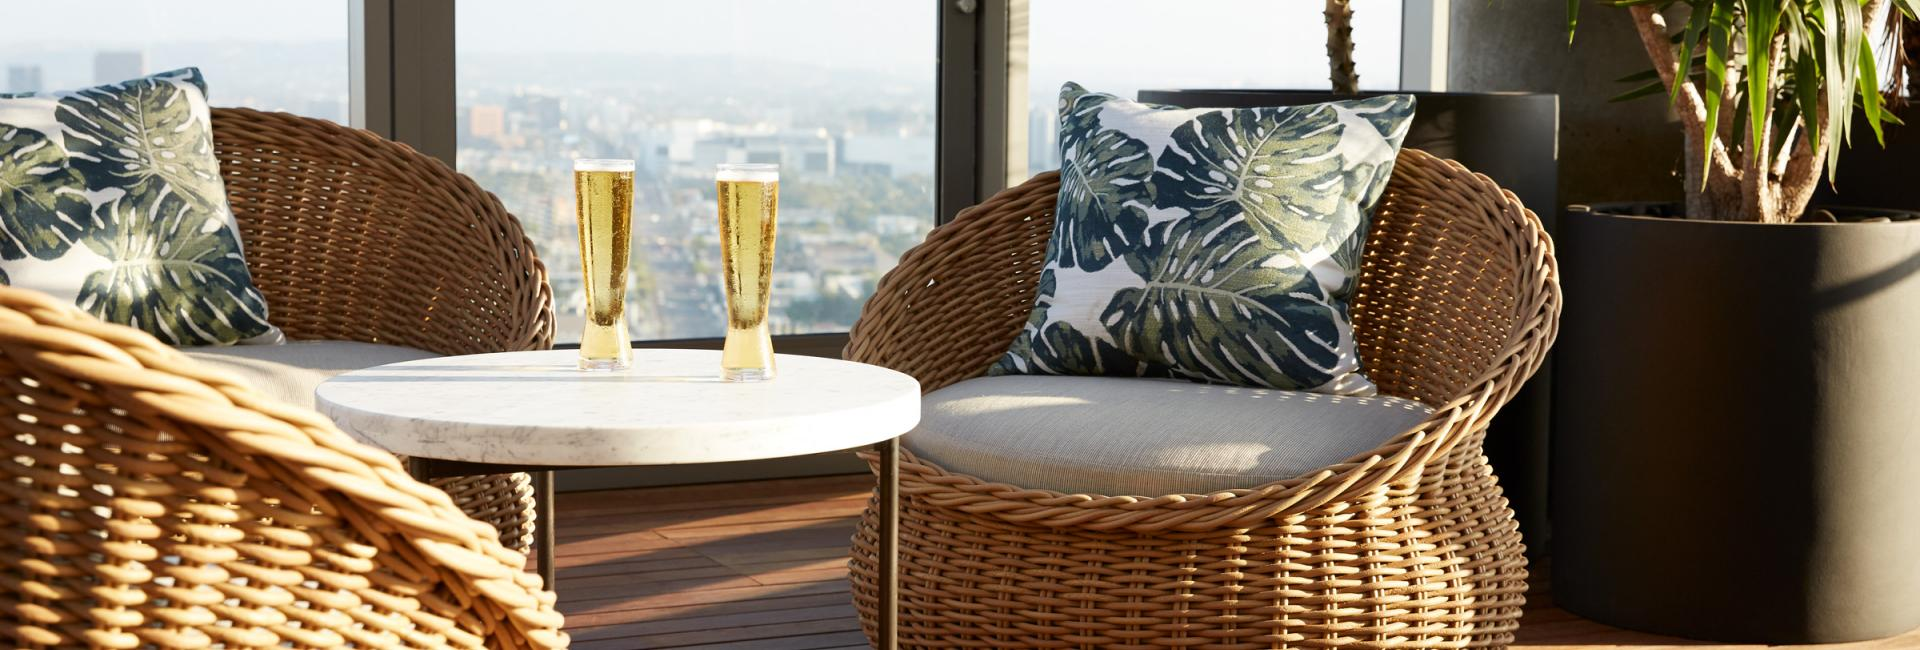 close up of two wicker chairs and drinks